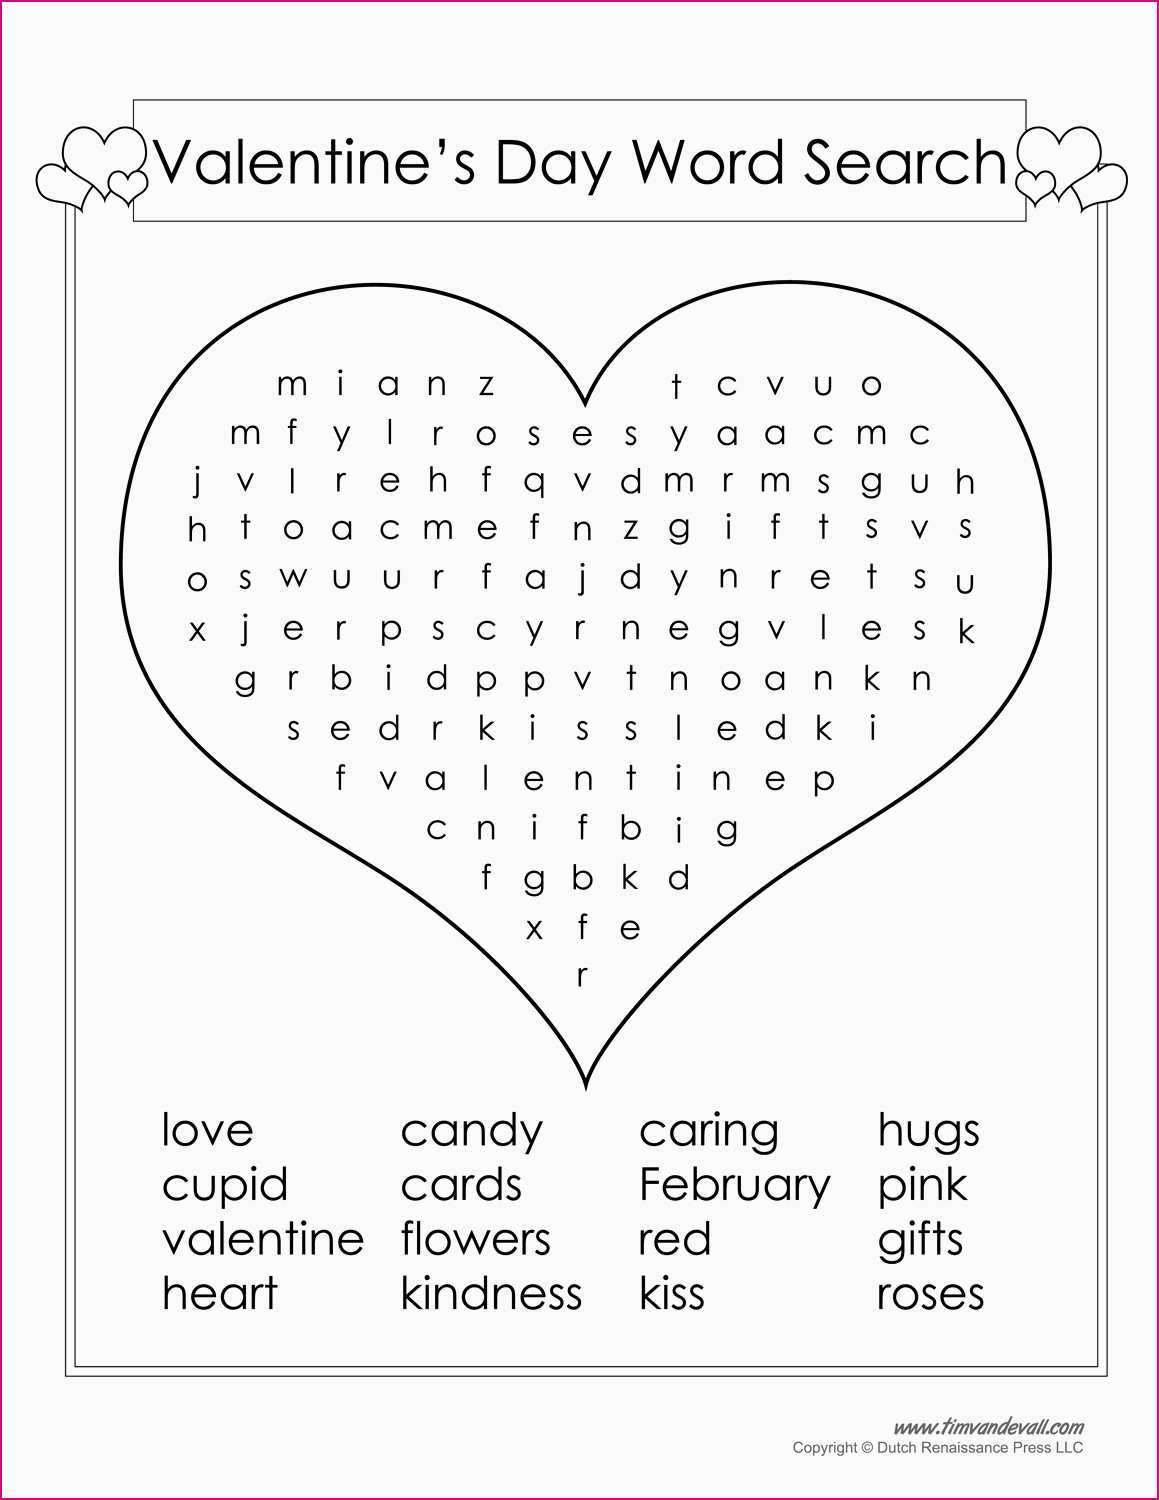 Valentine Puzzles : 35 Imperative Models You Must Consider - Printable Christian Valentine Puzzles